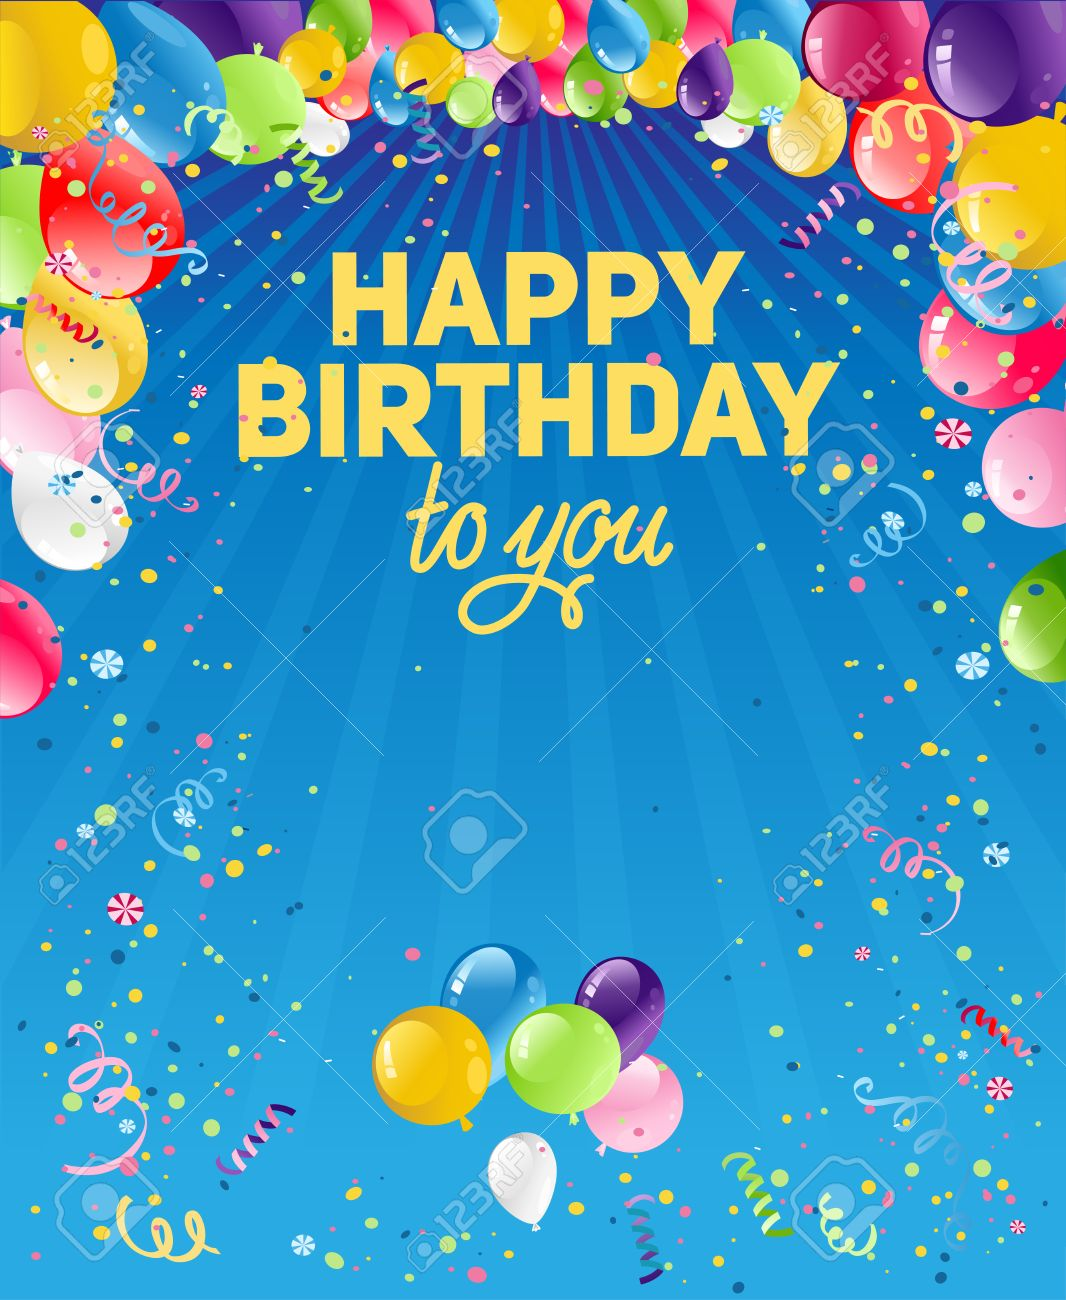 design for birthday banner ; 71830781-holiday-template-for-design-banner-ticket-leaflet-card-poster-and-so-on-happy-birthday-background-an